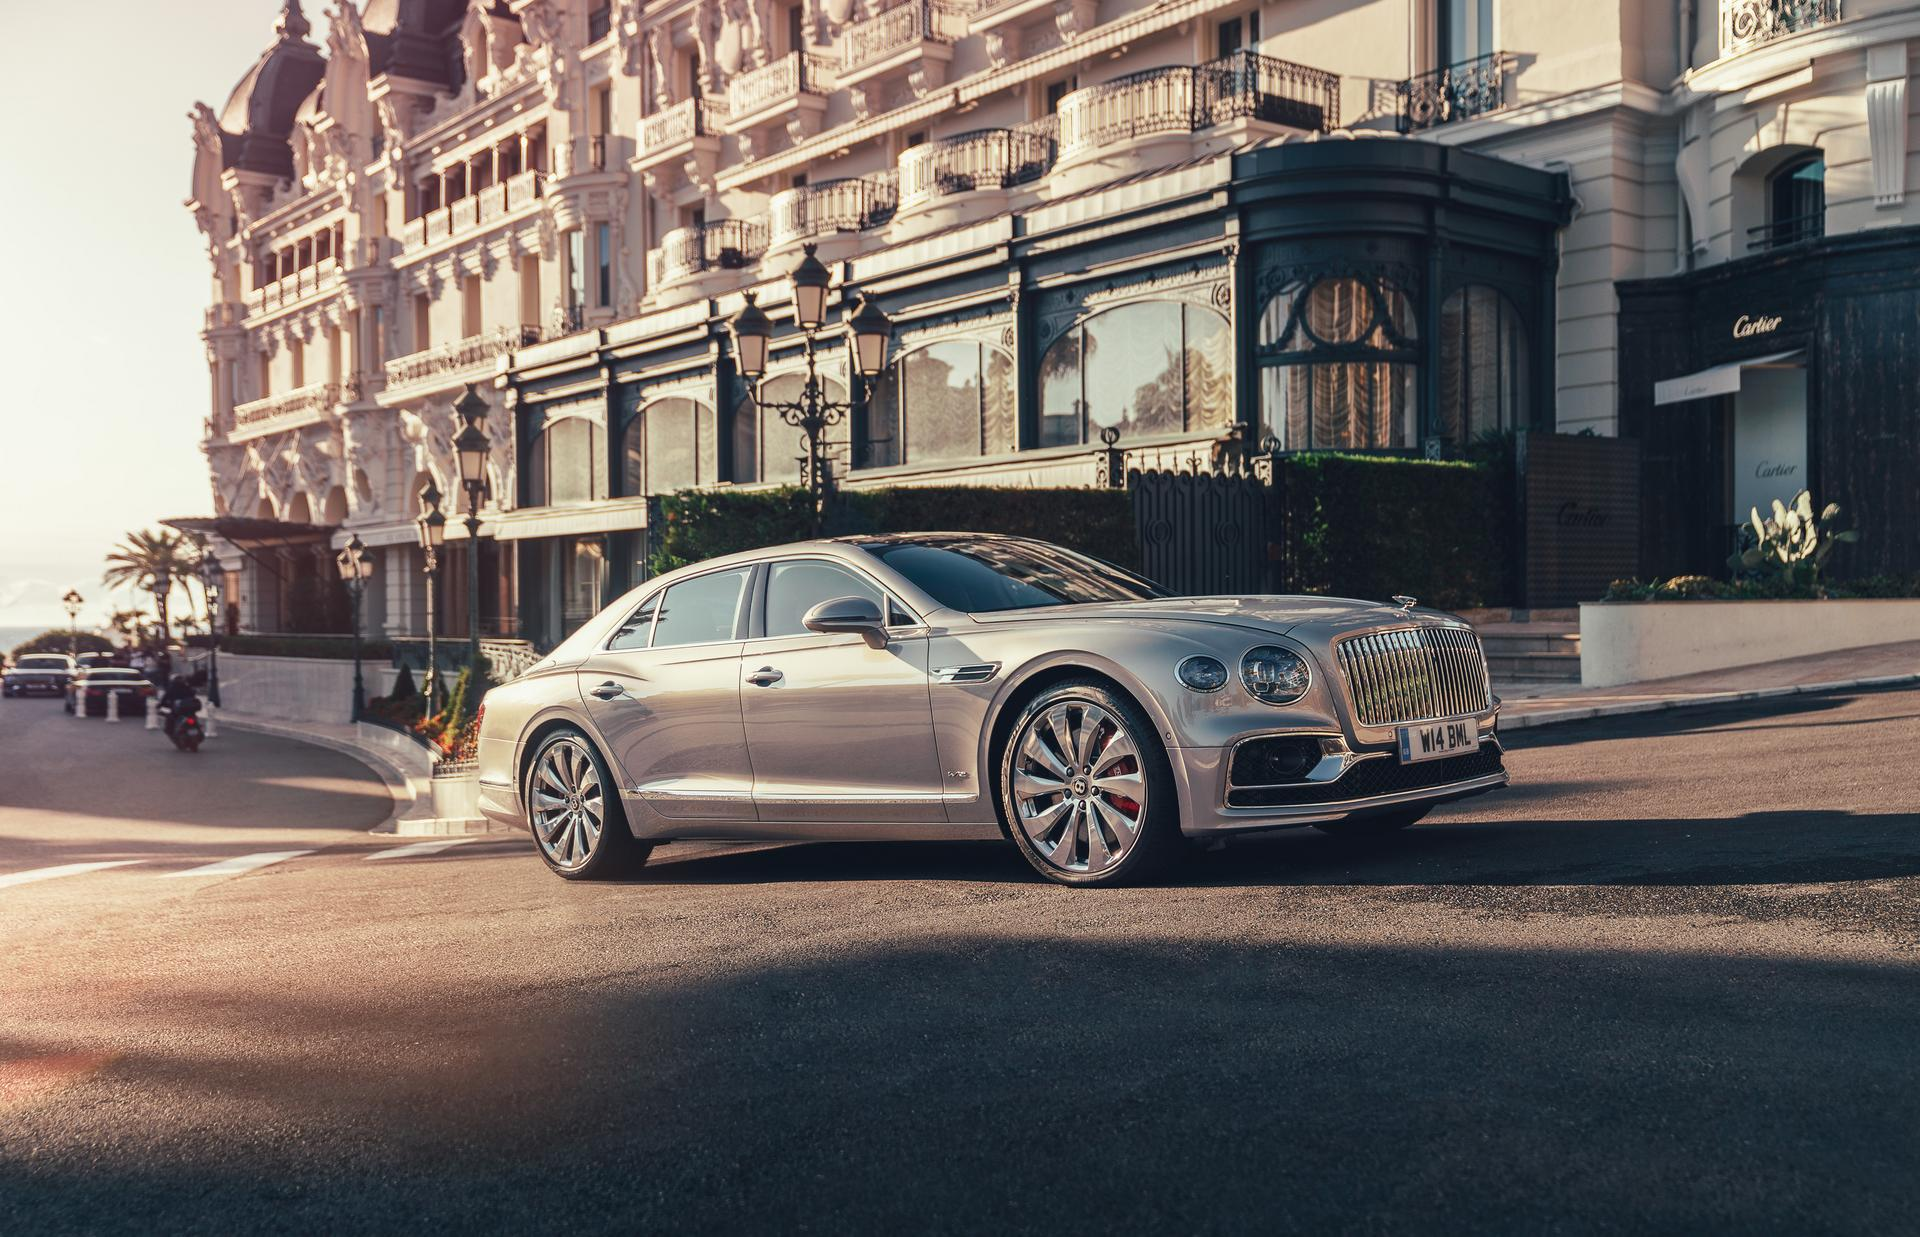 RP Bentley Flying Spur Monaco 159 scaled